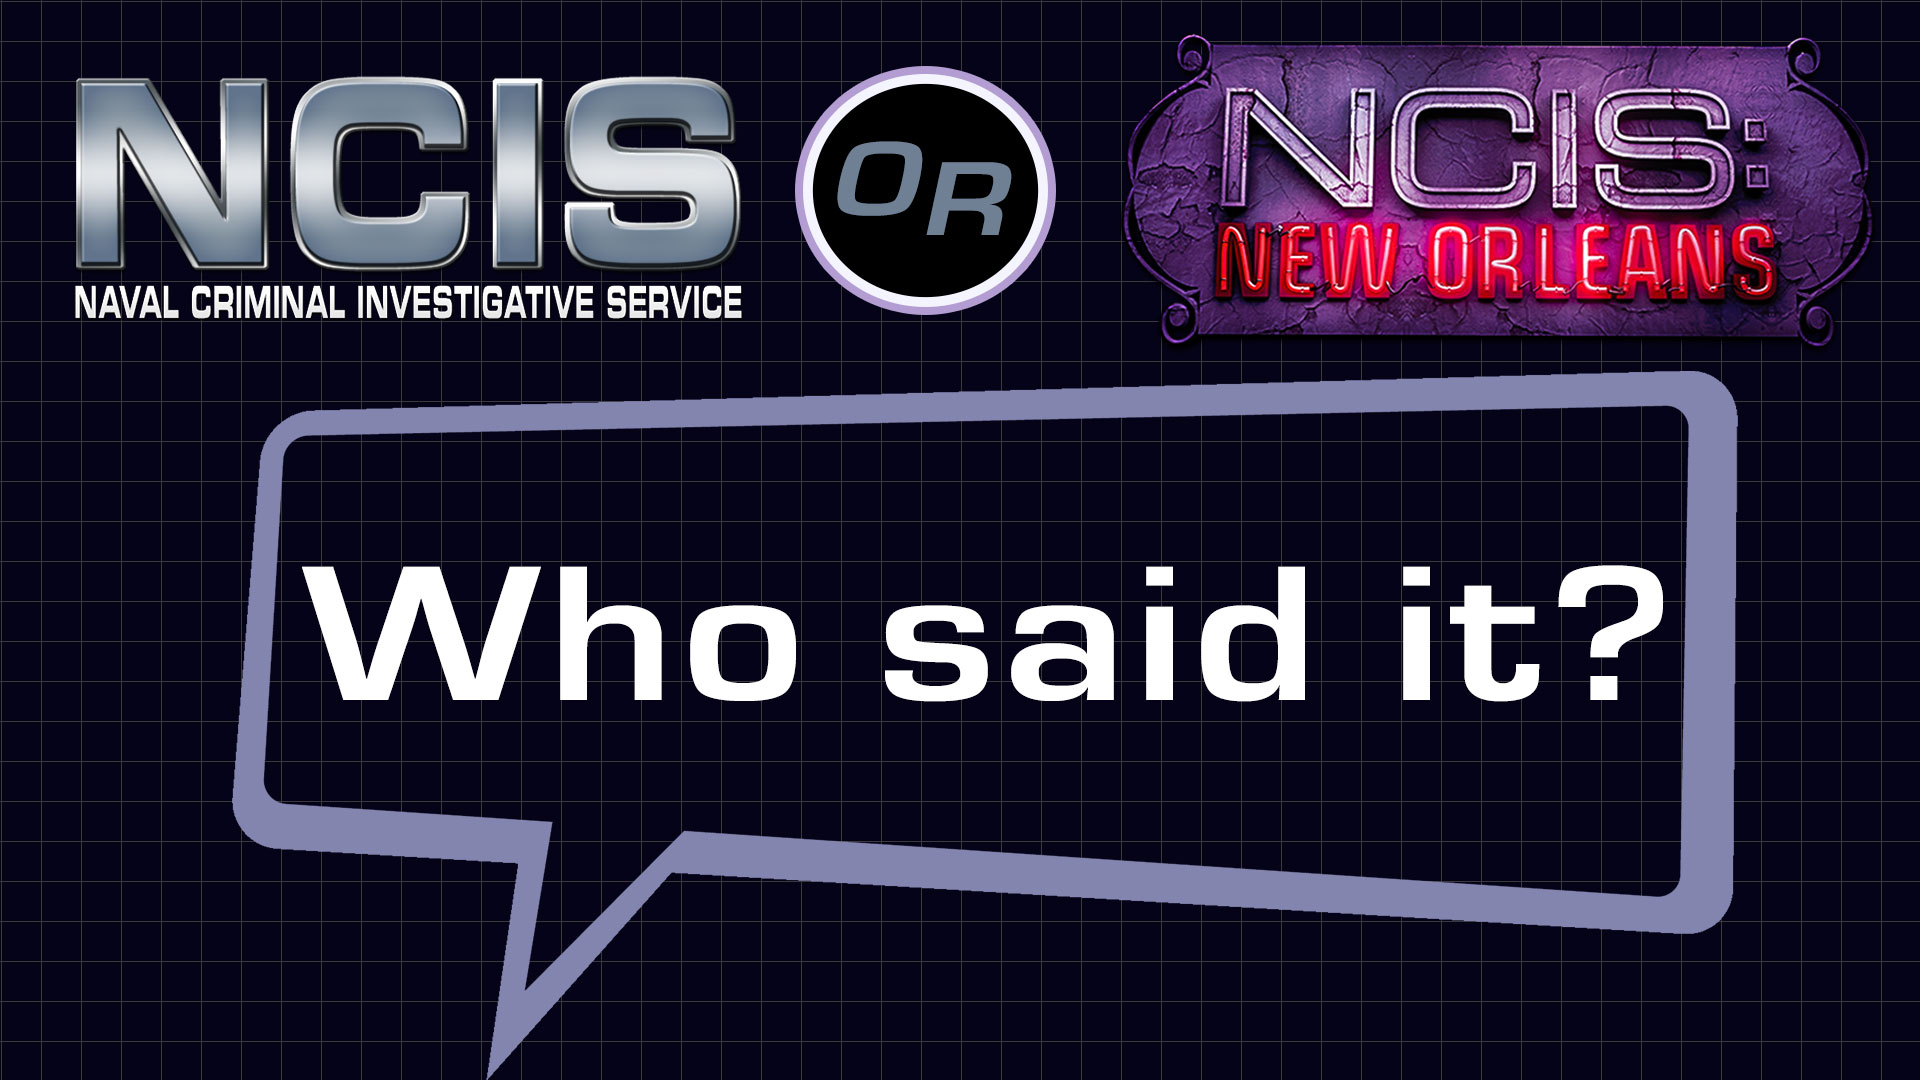 NCIS or NCIS: New Orleans?